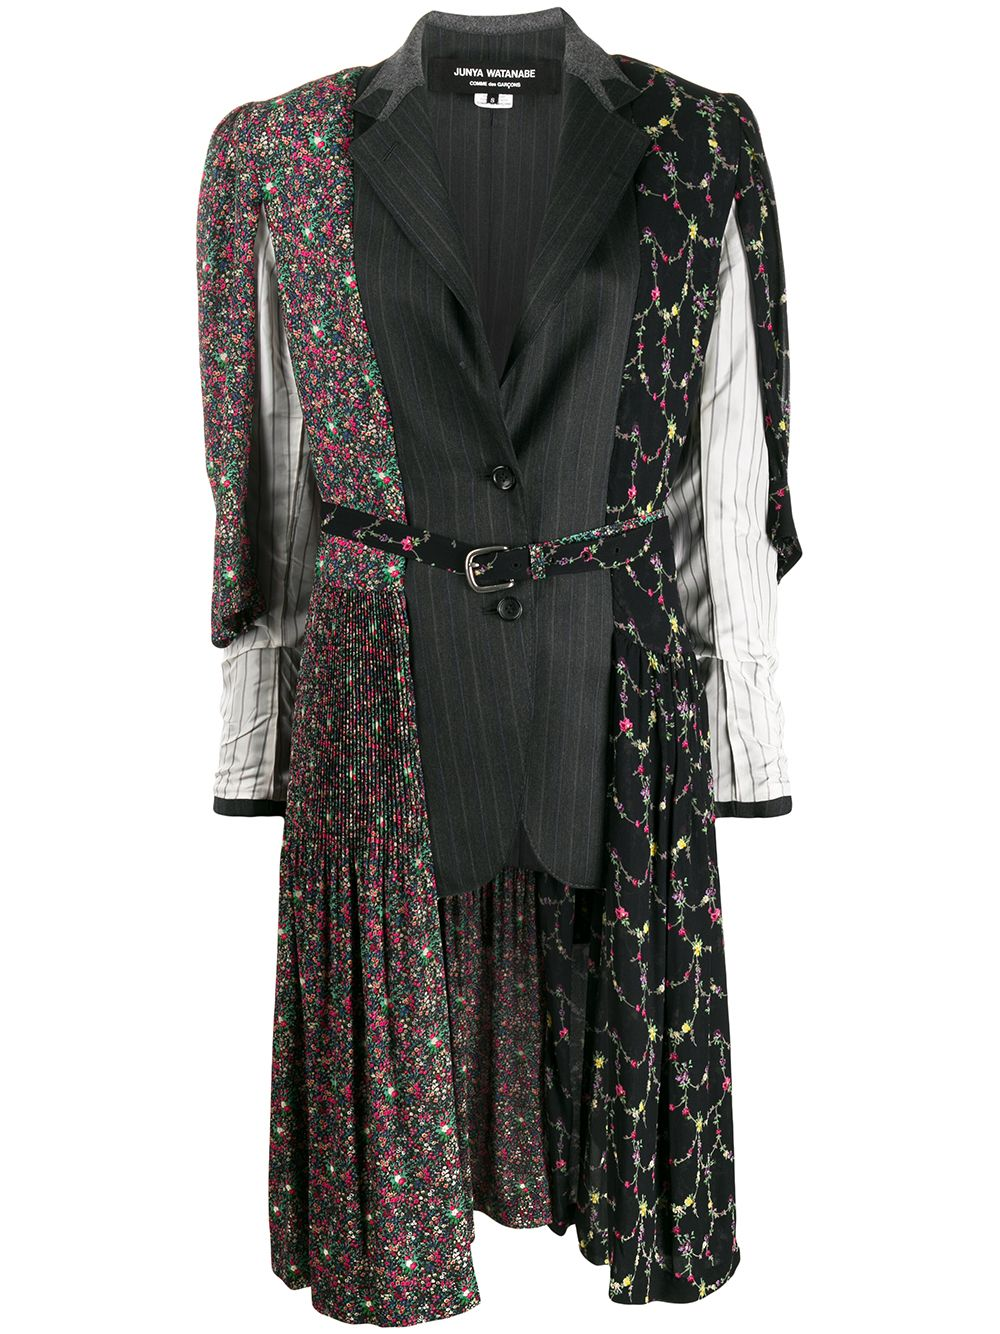 Jacket And Dress Attached